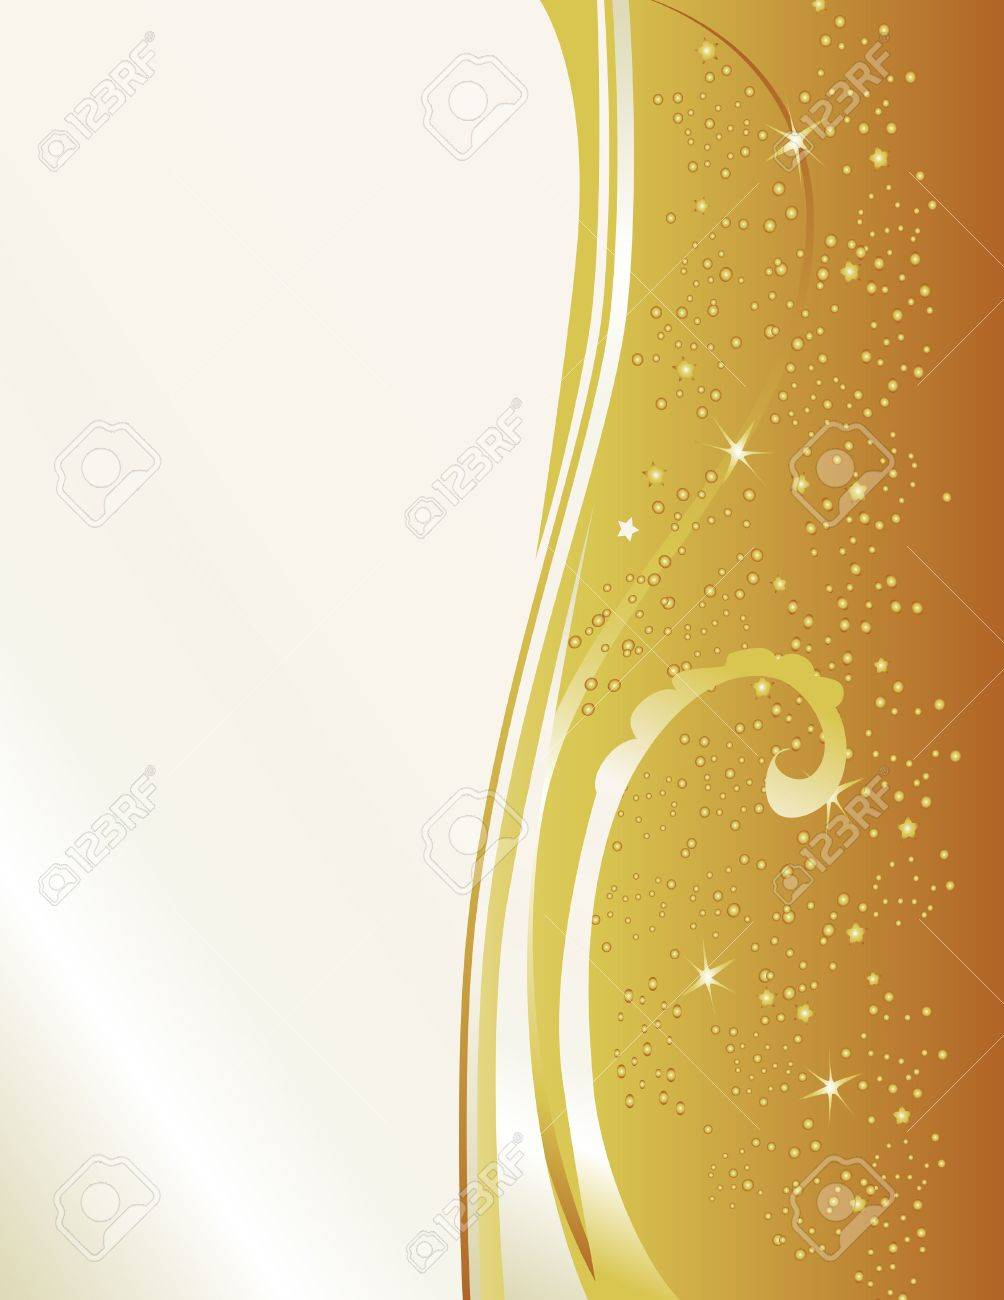 Celebrate with this gold & pearl new years inspired background. Features star bursts and a cascade of sparks. Stock Photo - 3995788